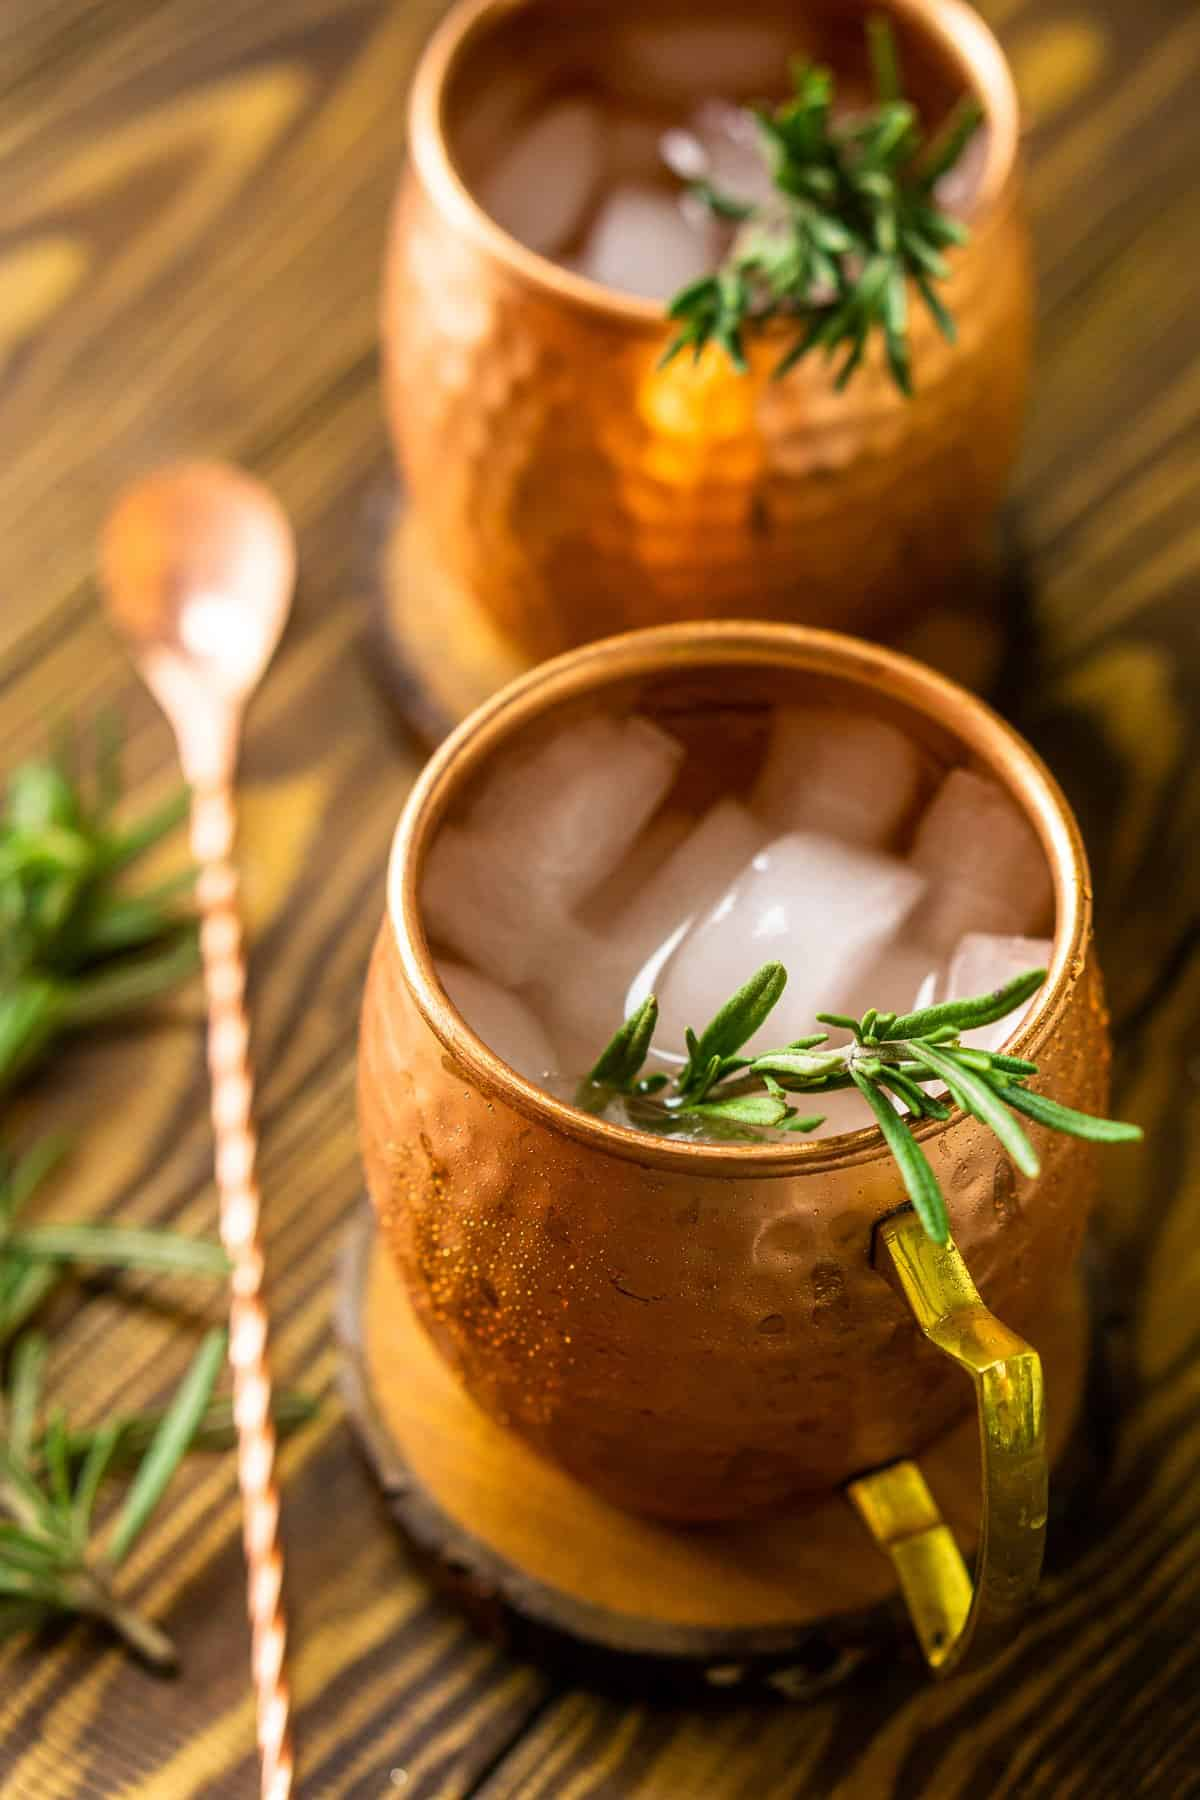 An aerial view of two rosemary mules with a bar spoon on a wooden board to the side.